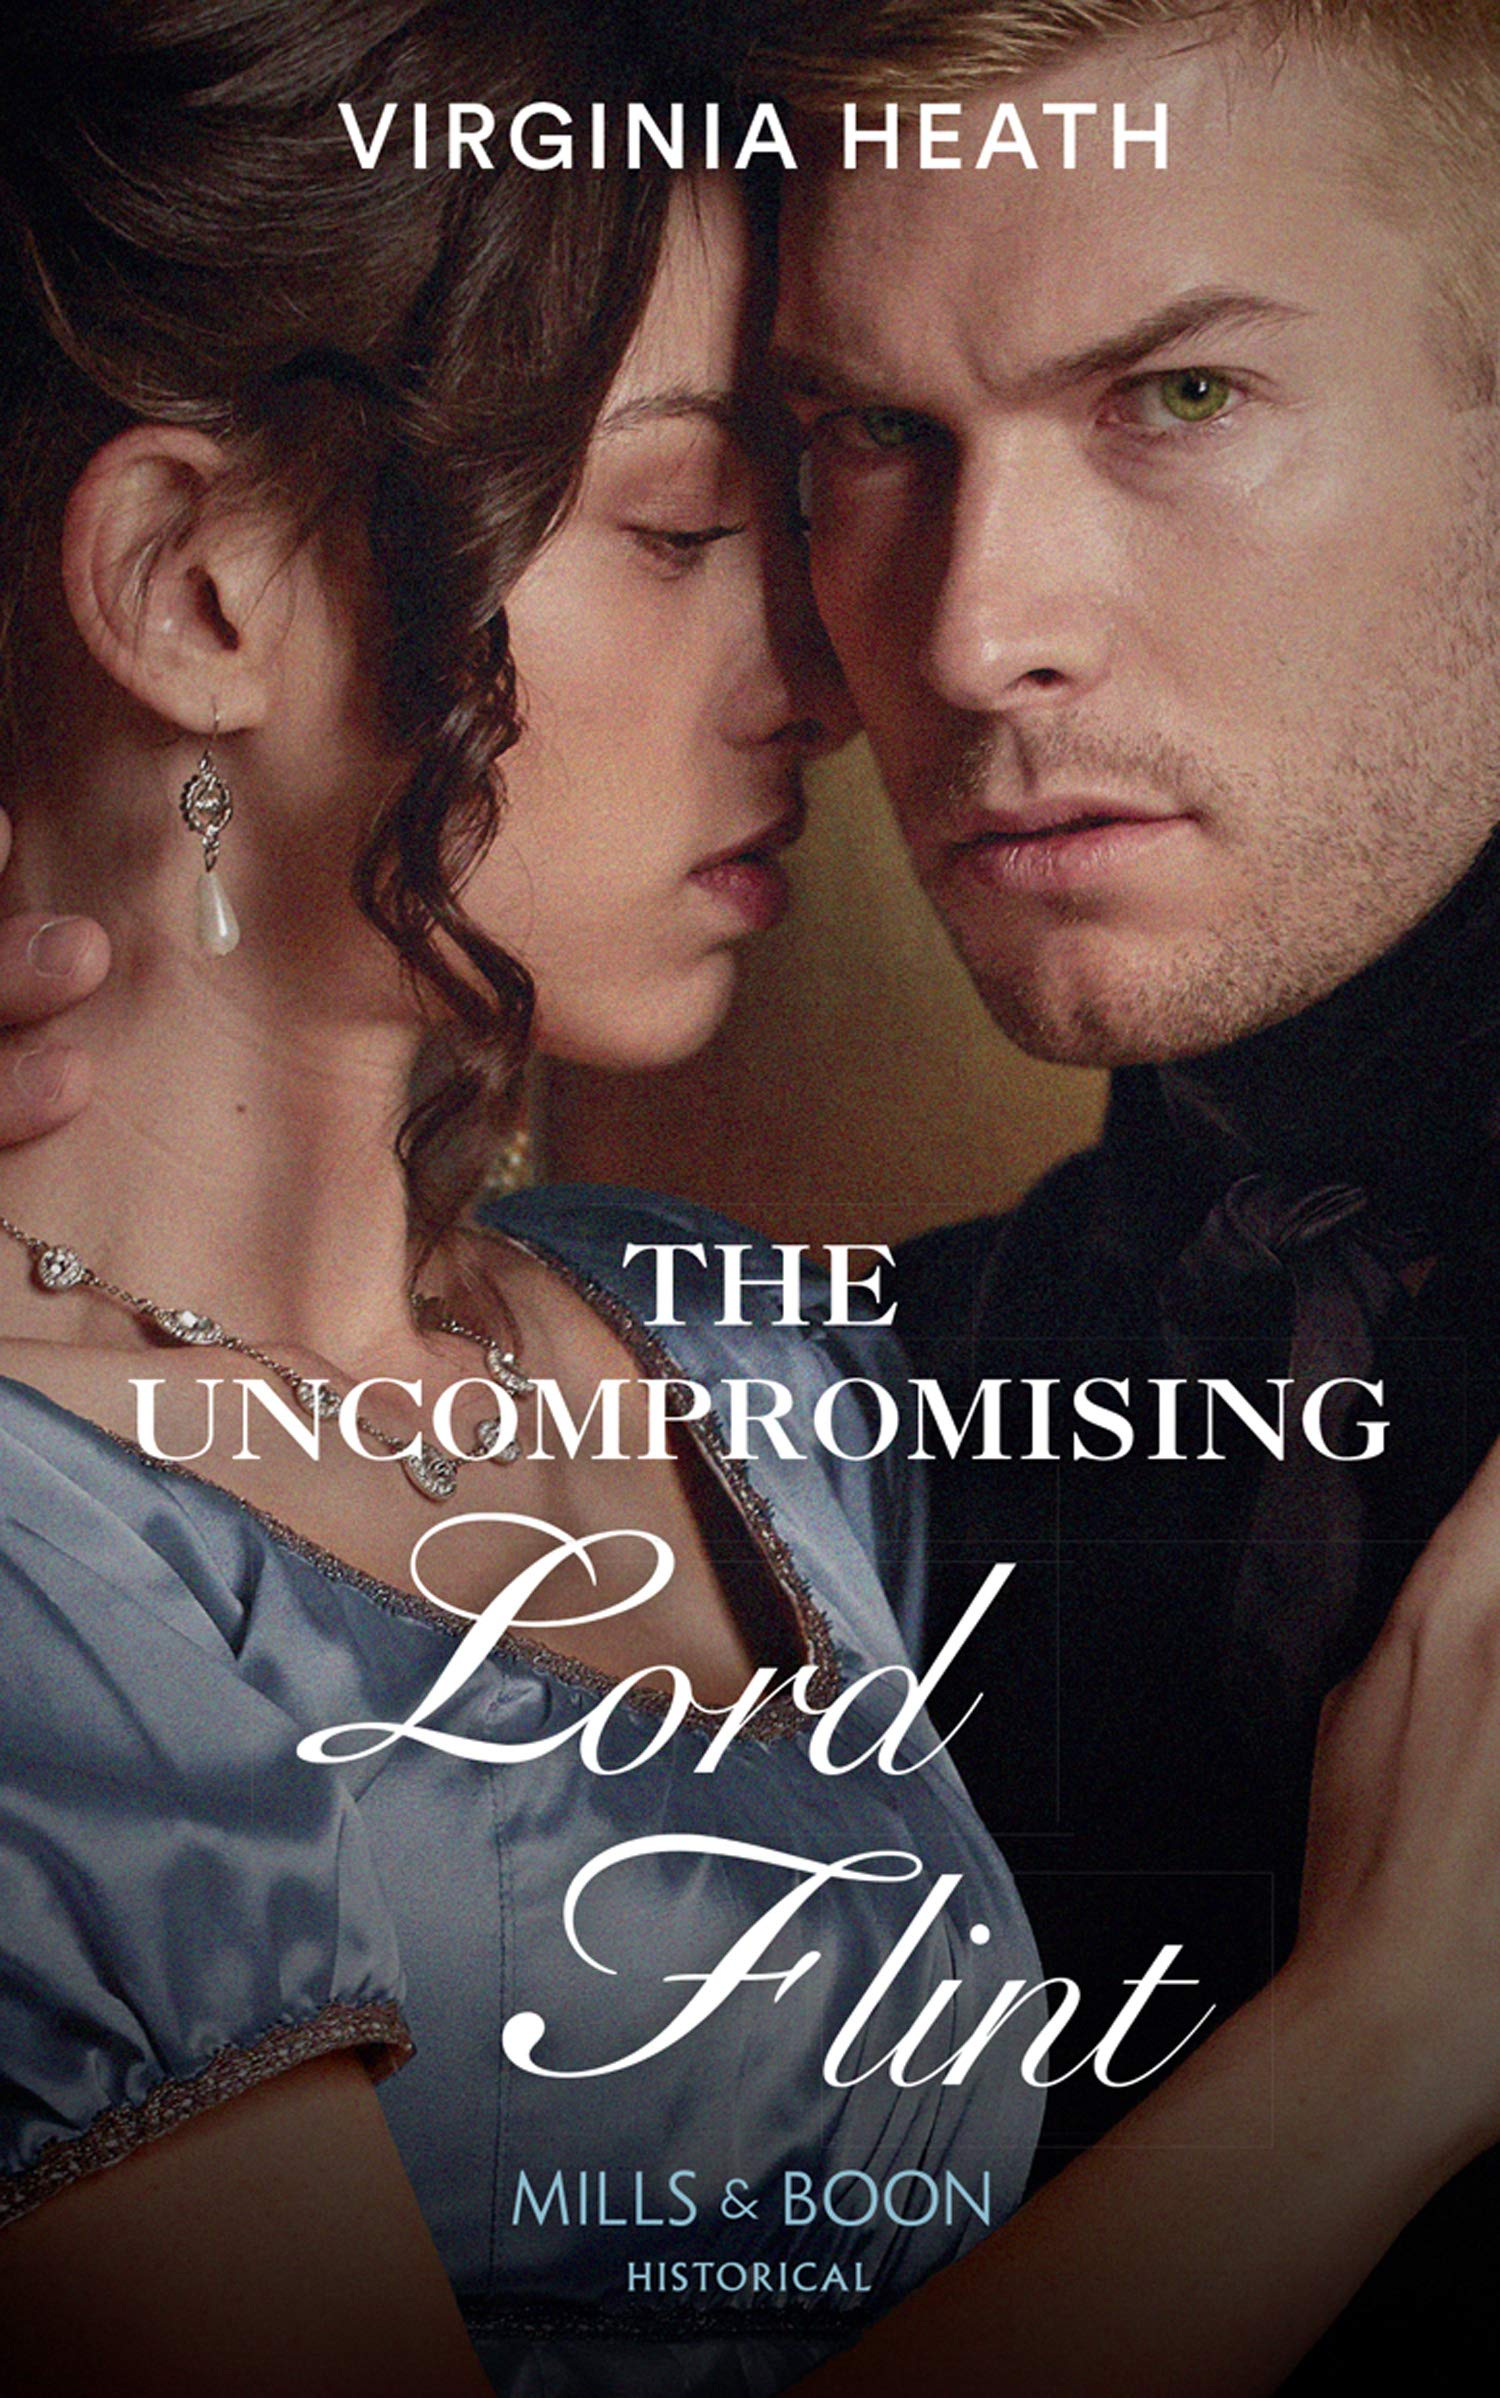 the uncompromising lord flint uk